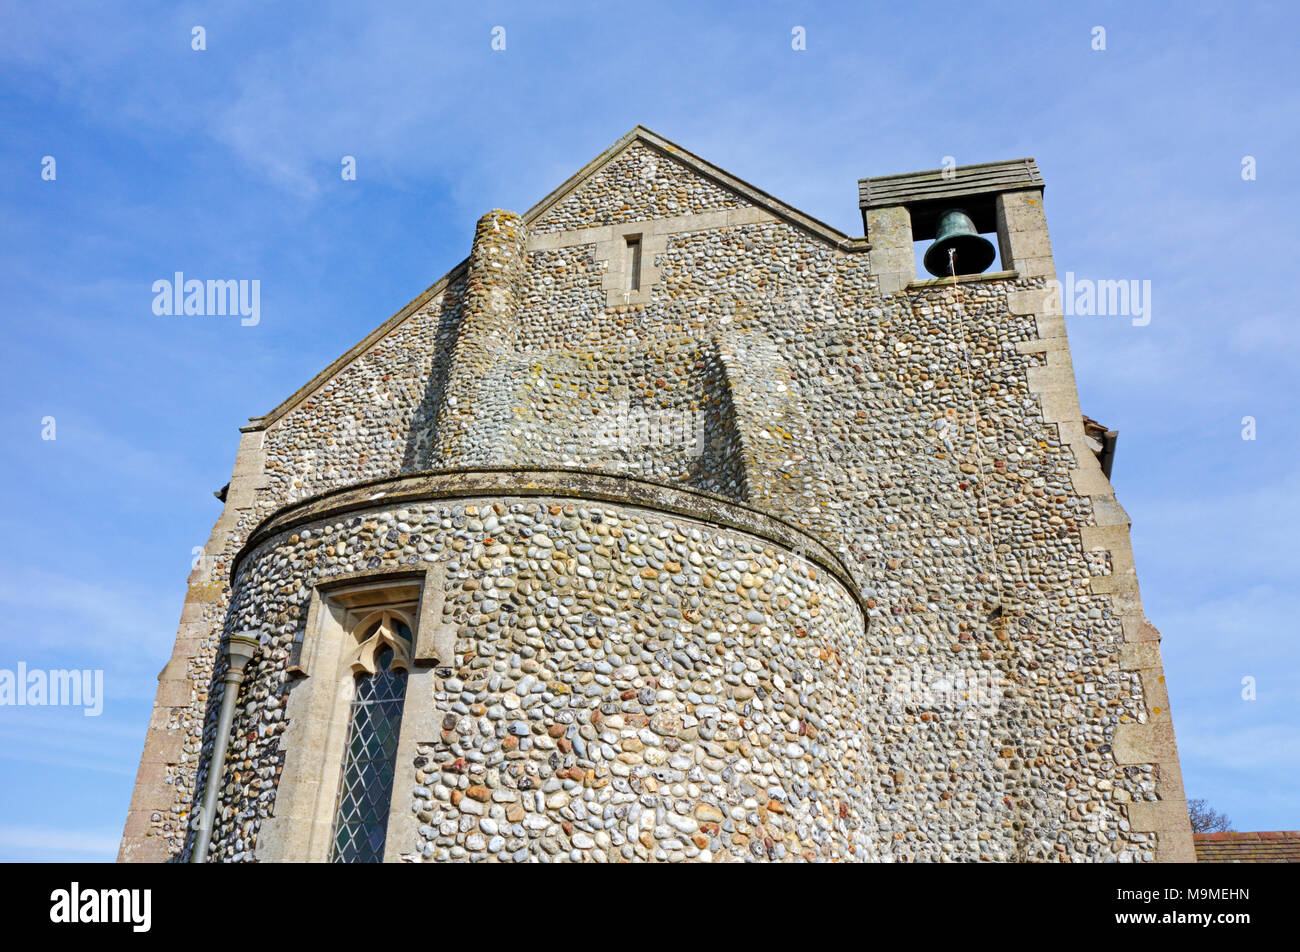 A view of the rebuilt west end of the parish church of St Nicholas at Dilham, Norfolk, England, United Kingdom, Europe. - Stock Image